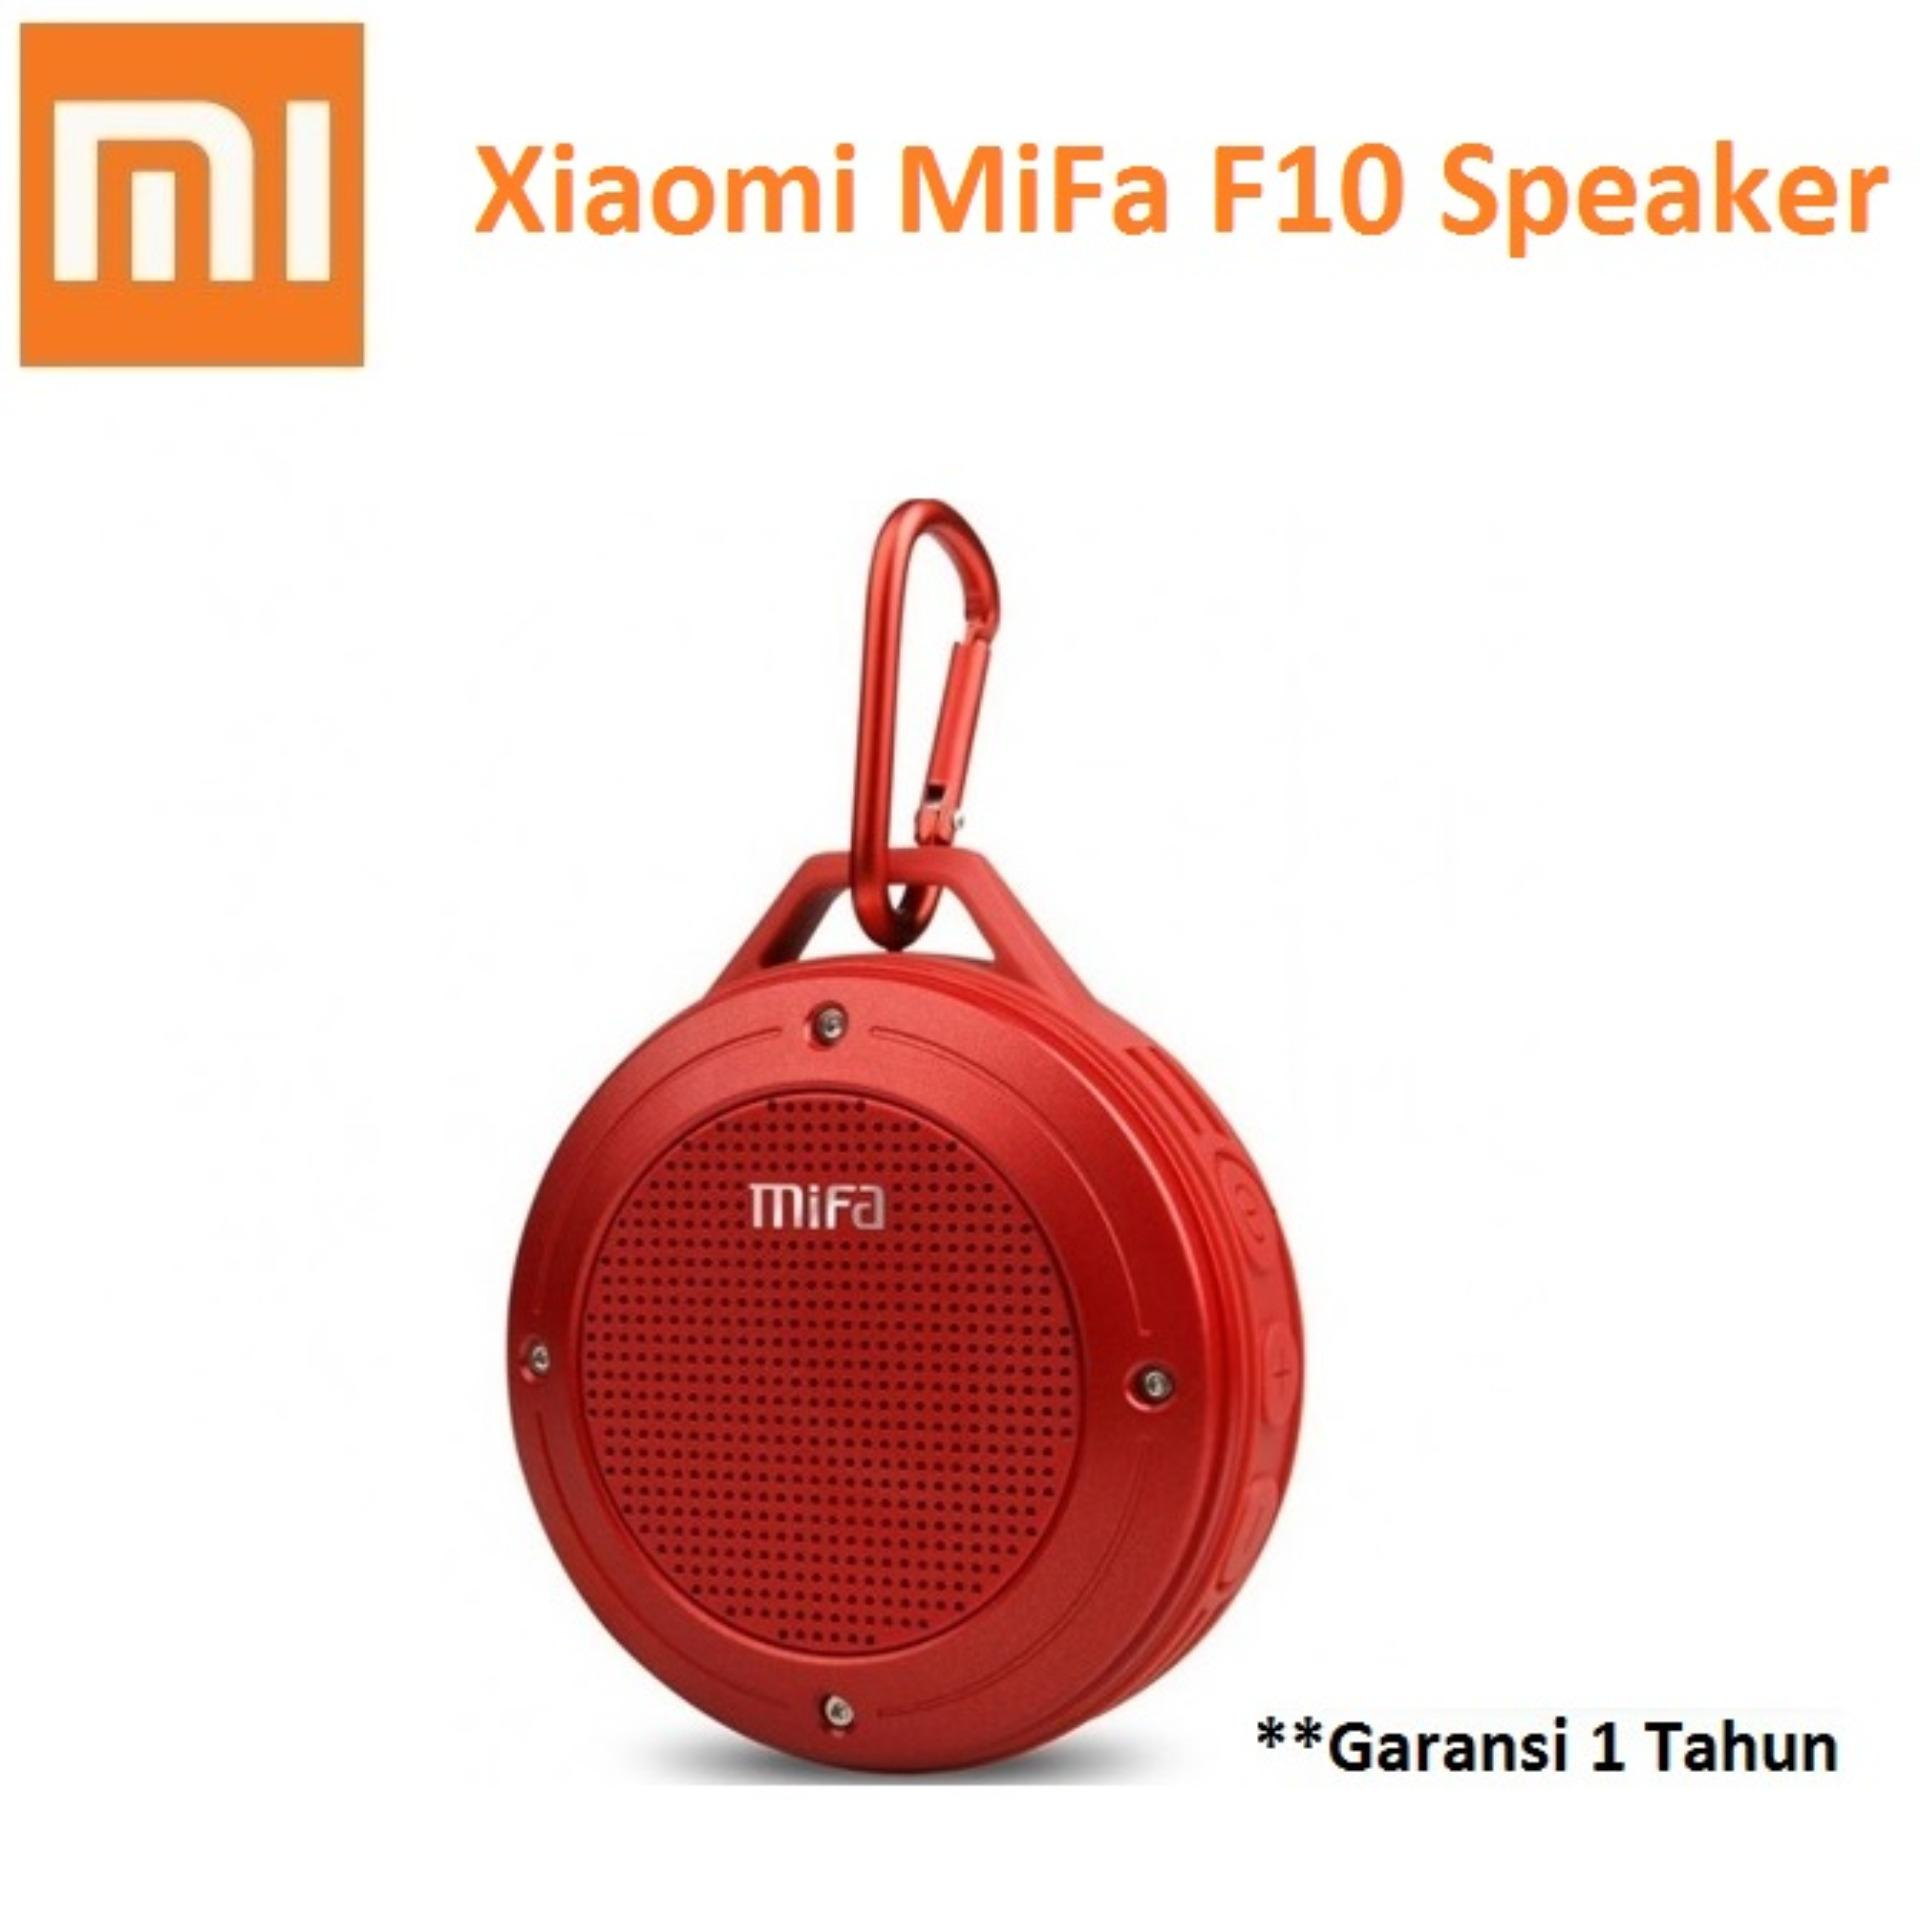 Spesifikasi Xiaomi Mifa F10 Outdoor Waterproof Ipx6 Bluetooth Portable Speaker Merah Murah